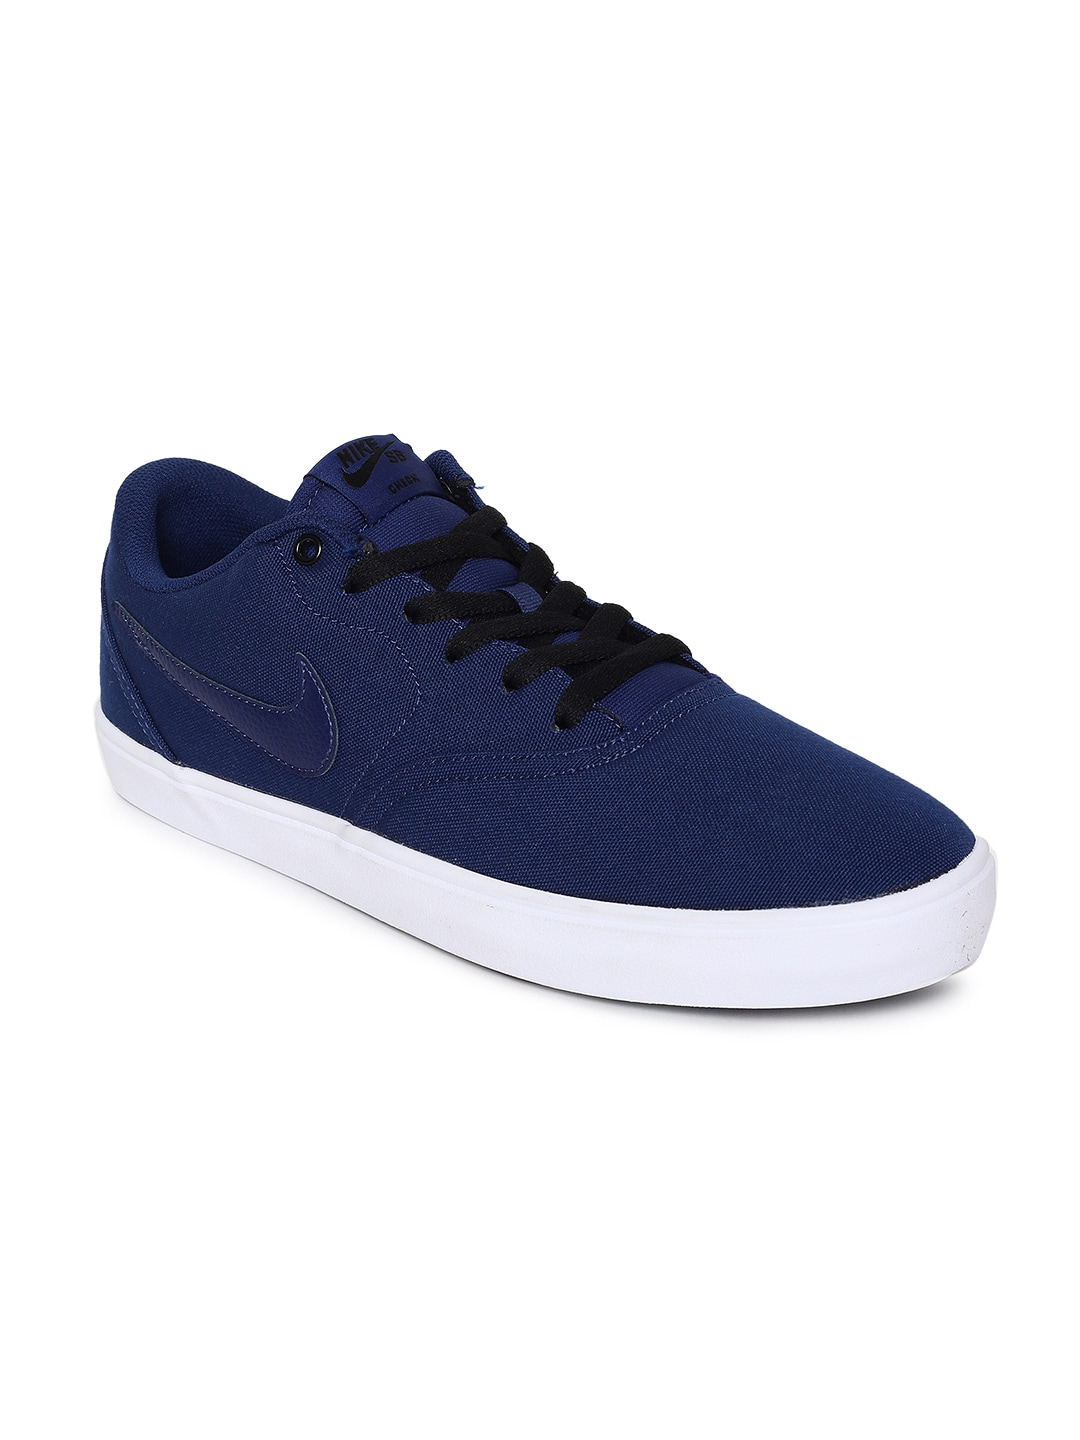 timeless design b955f 18d91 Nike Shoes - Buy Nike Shoes for Men, Women   Kids Online   Myntra